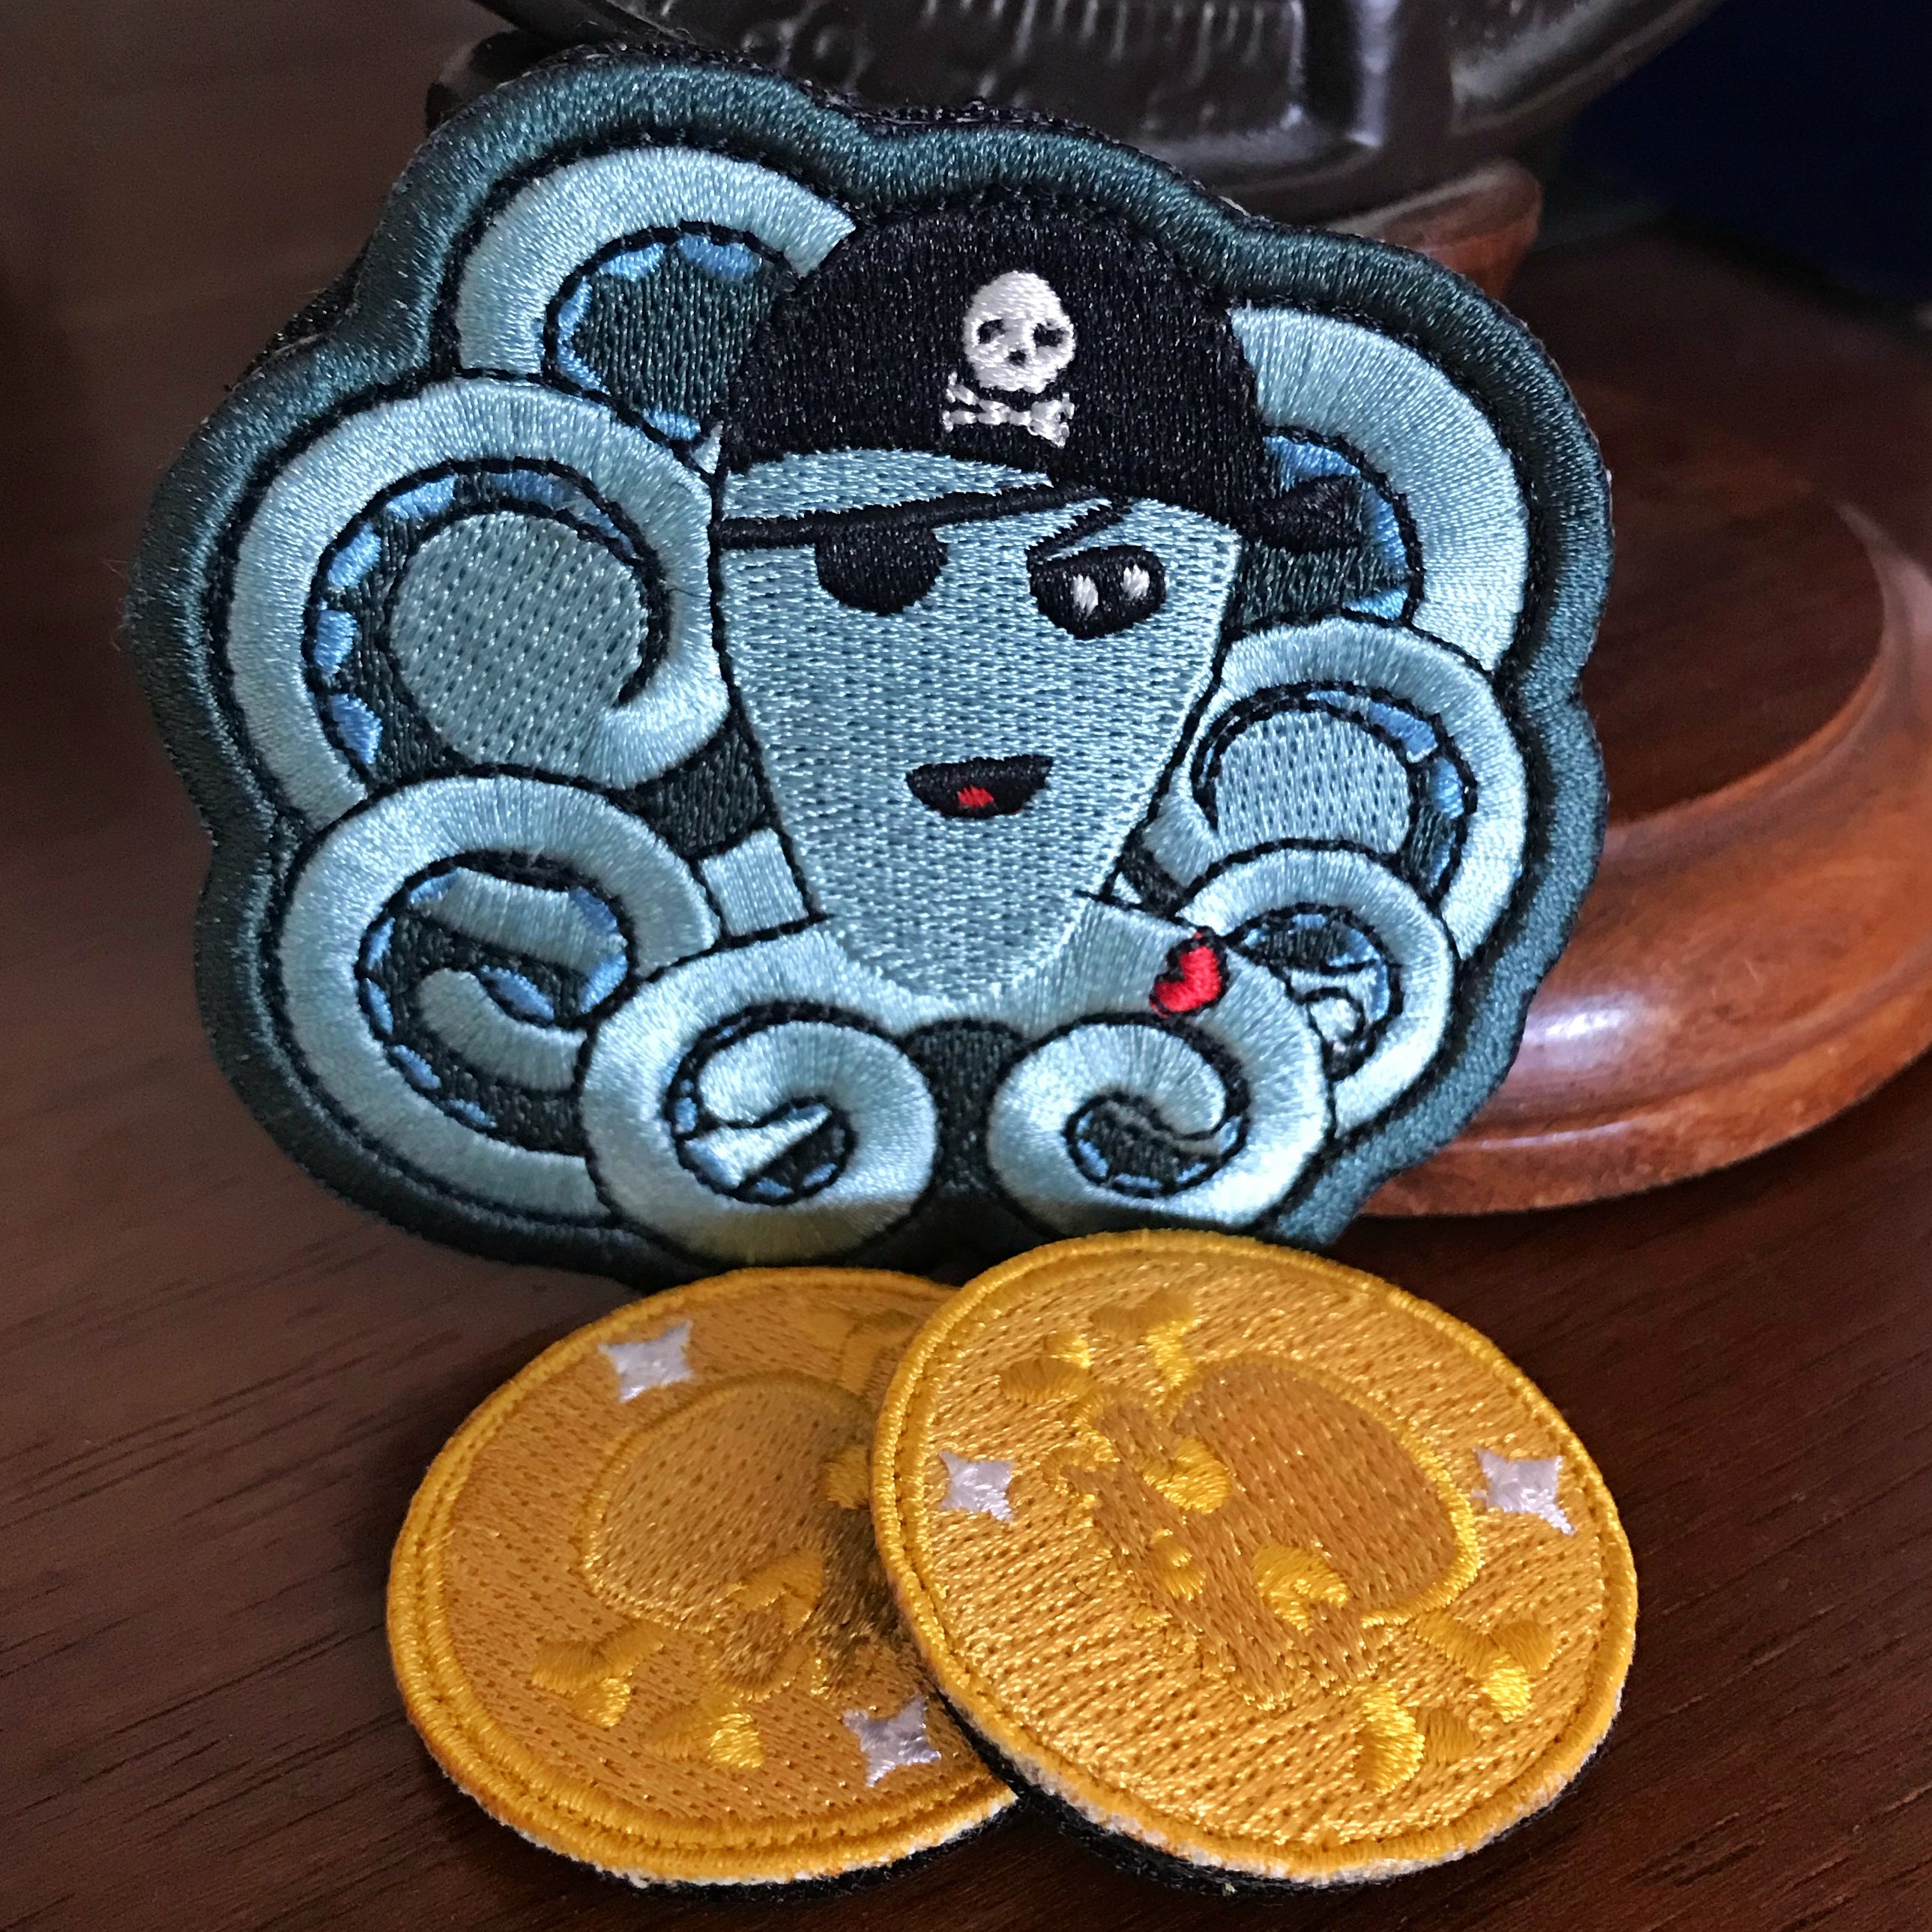 2018 Int'l Talk Like a Pirate Badge Collection